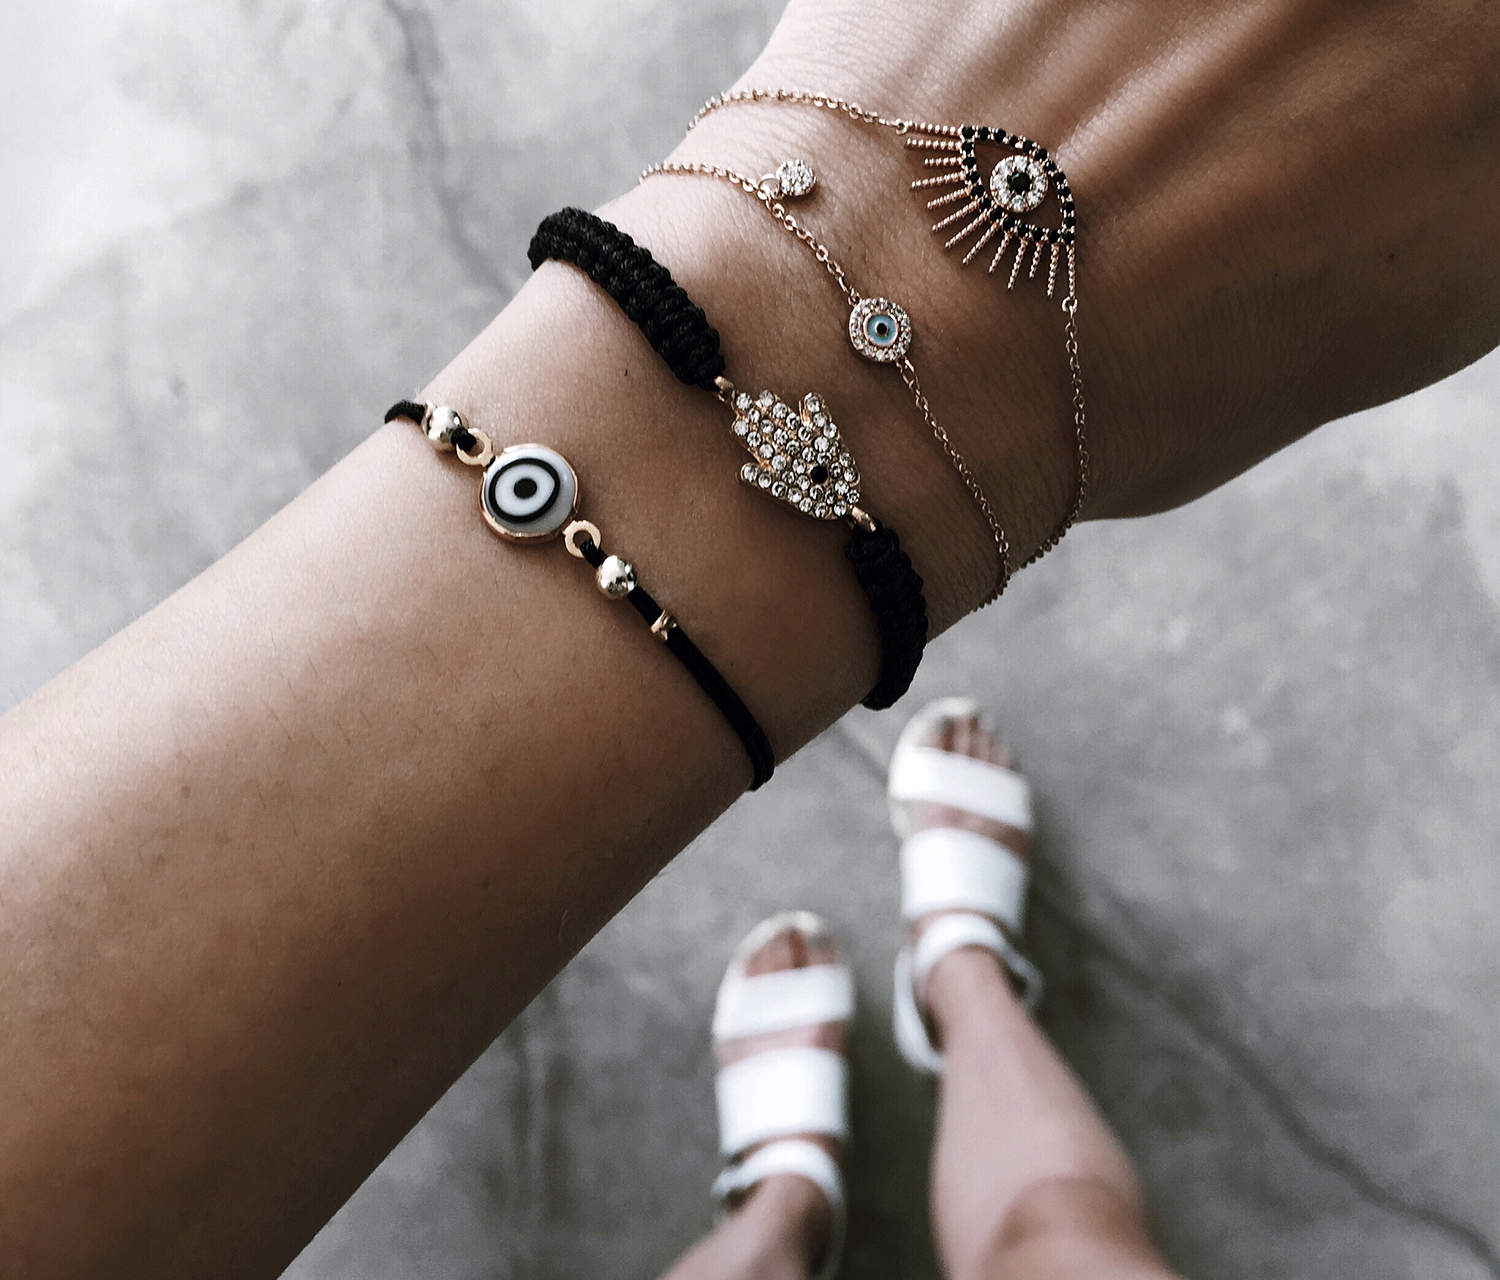 fashionlush, greece bracelets, evil eye jewelry